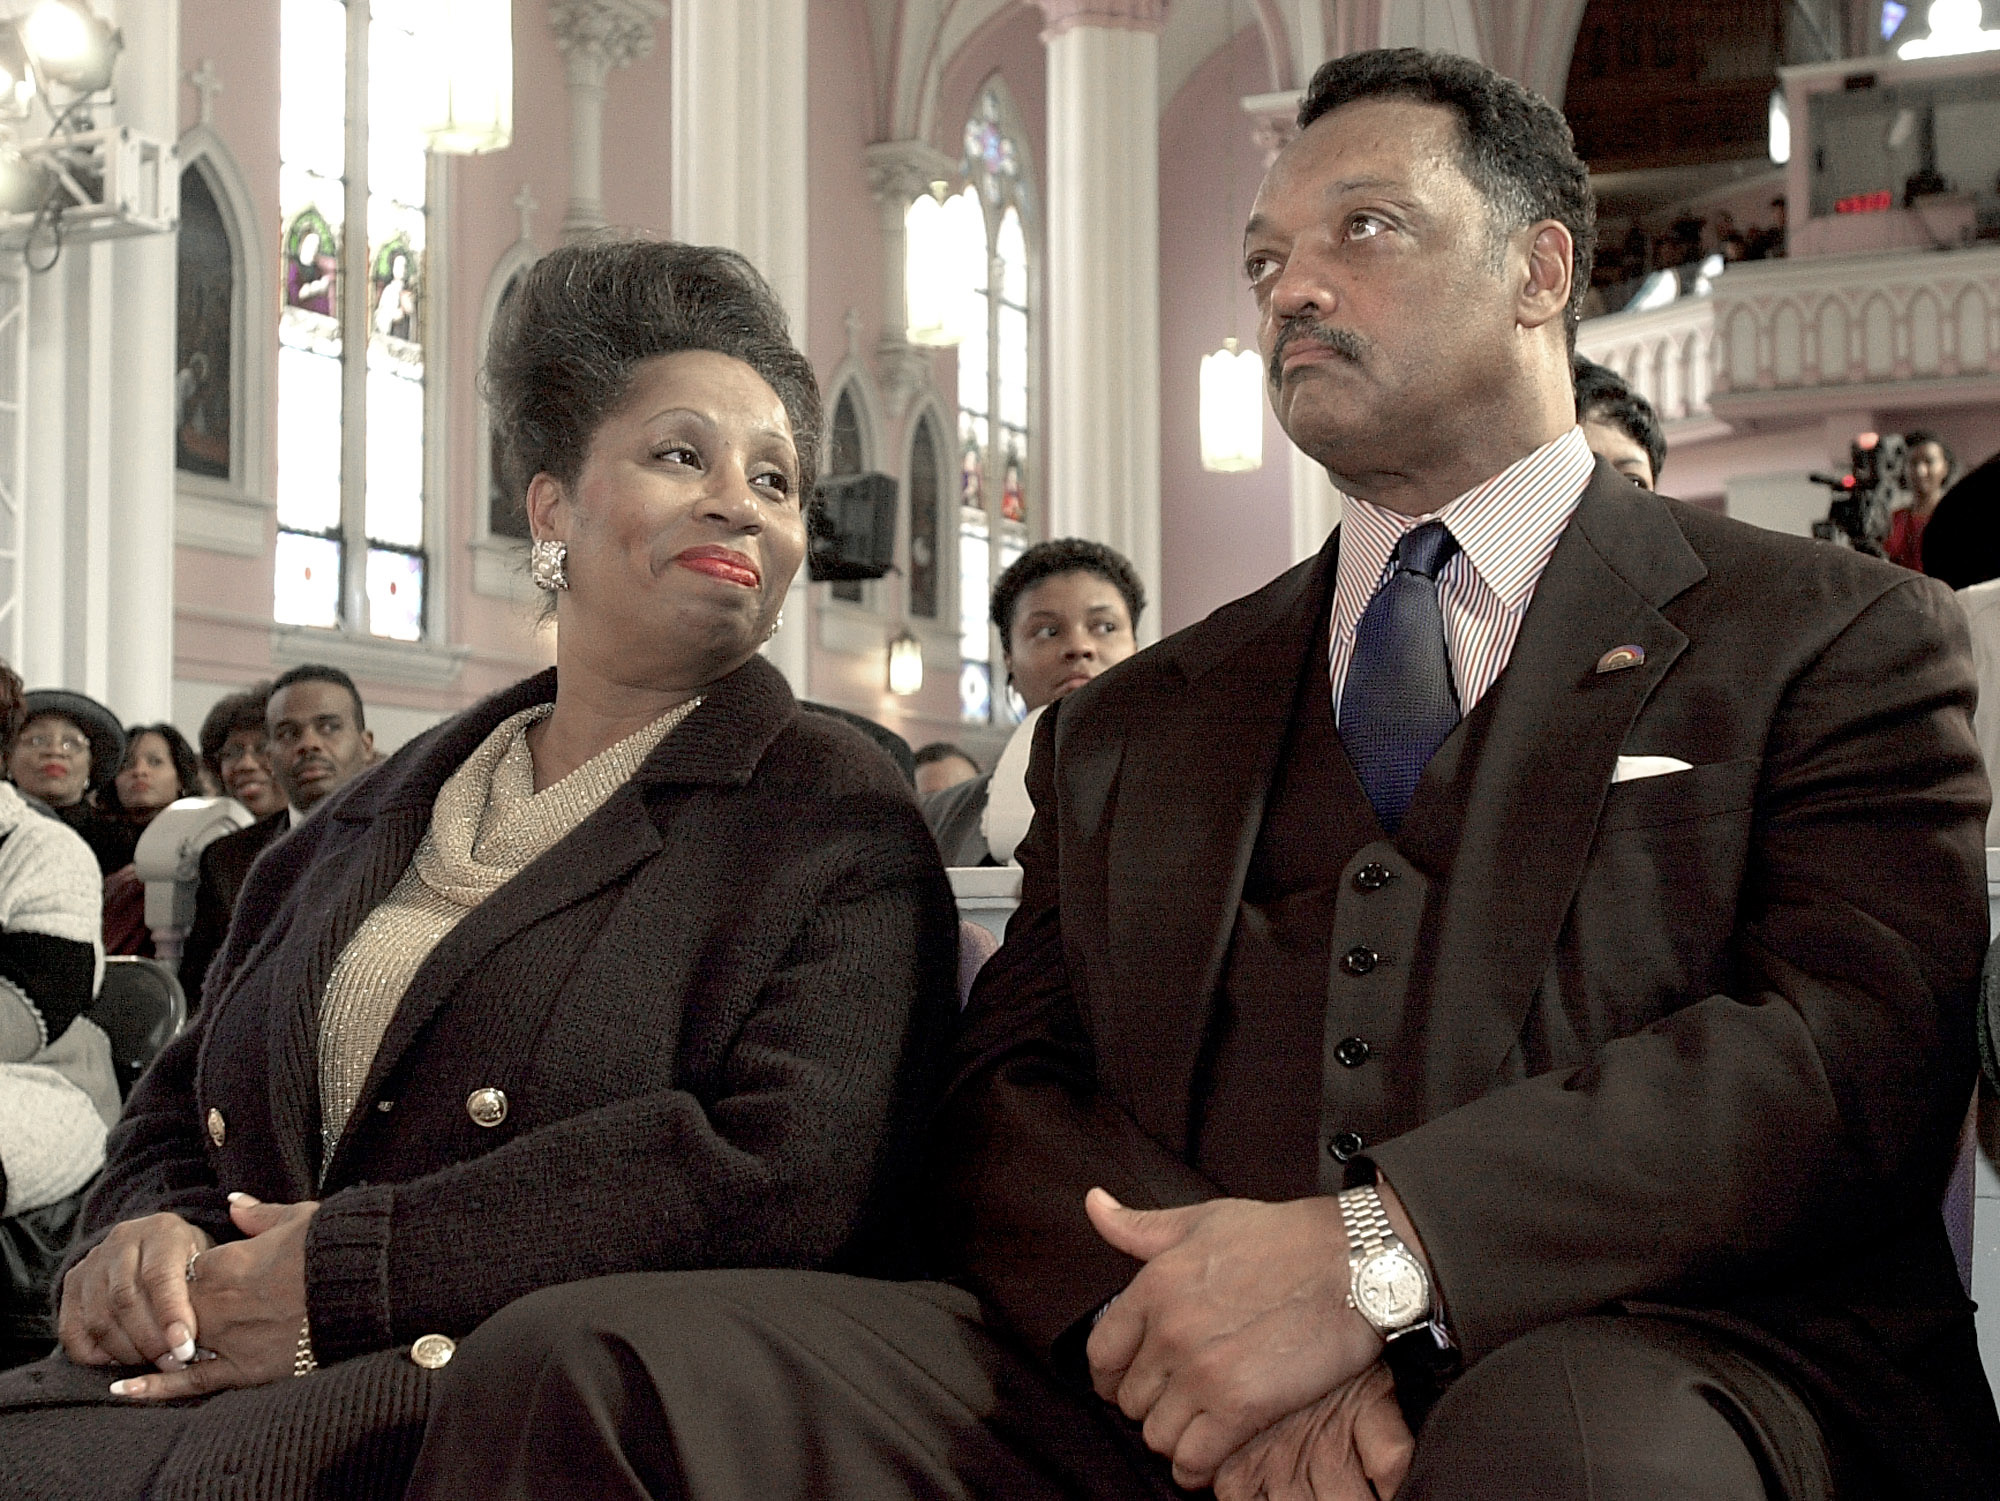 Jacqueline Jackson and Rev. Jesse Jackson photographed in 2001. Both were hospitalized with COVID-19 and are showing signs of improvement, according to the couple's son.